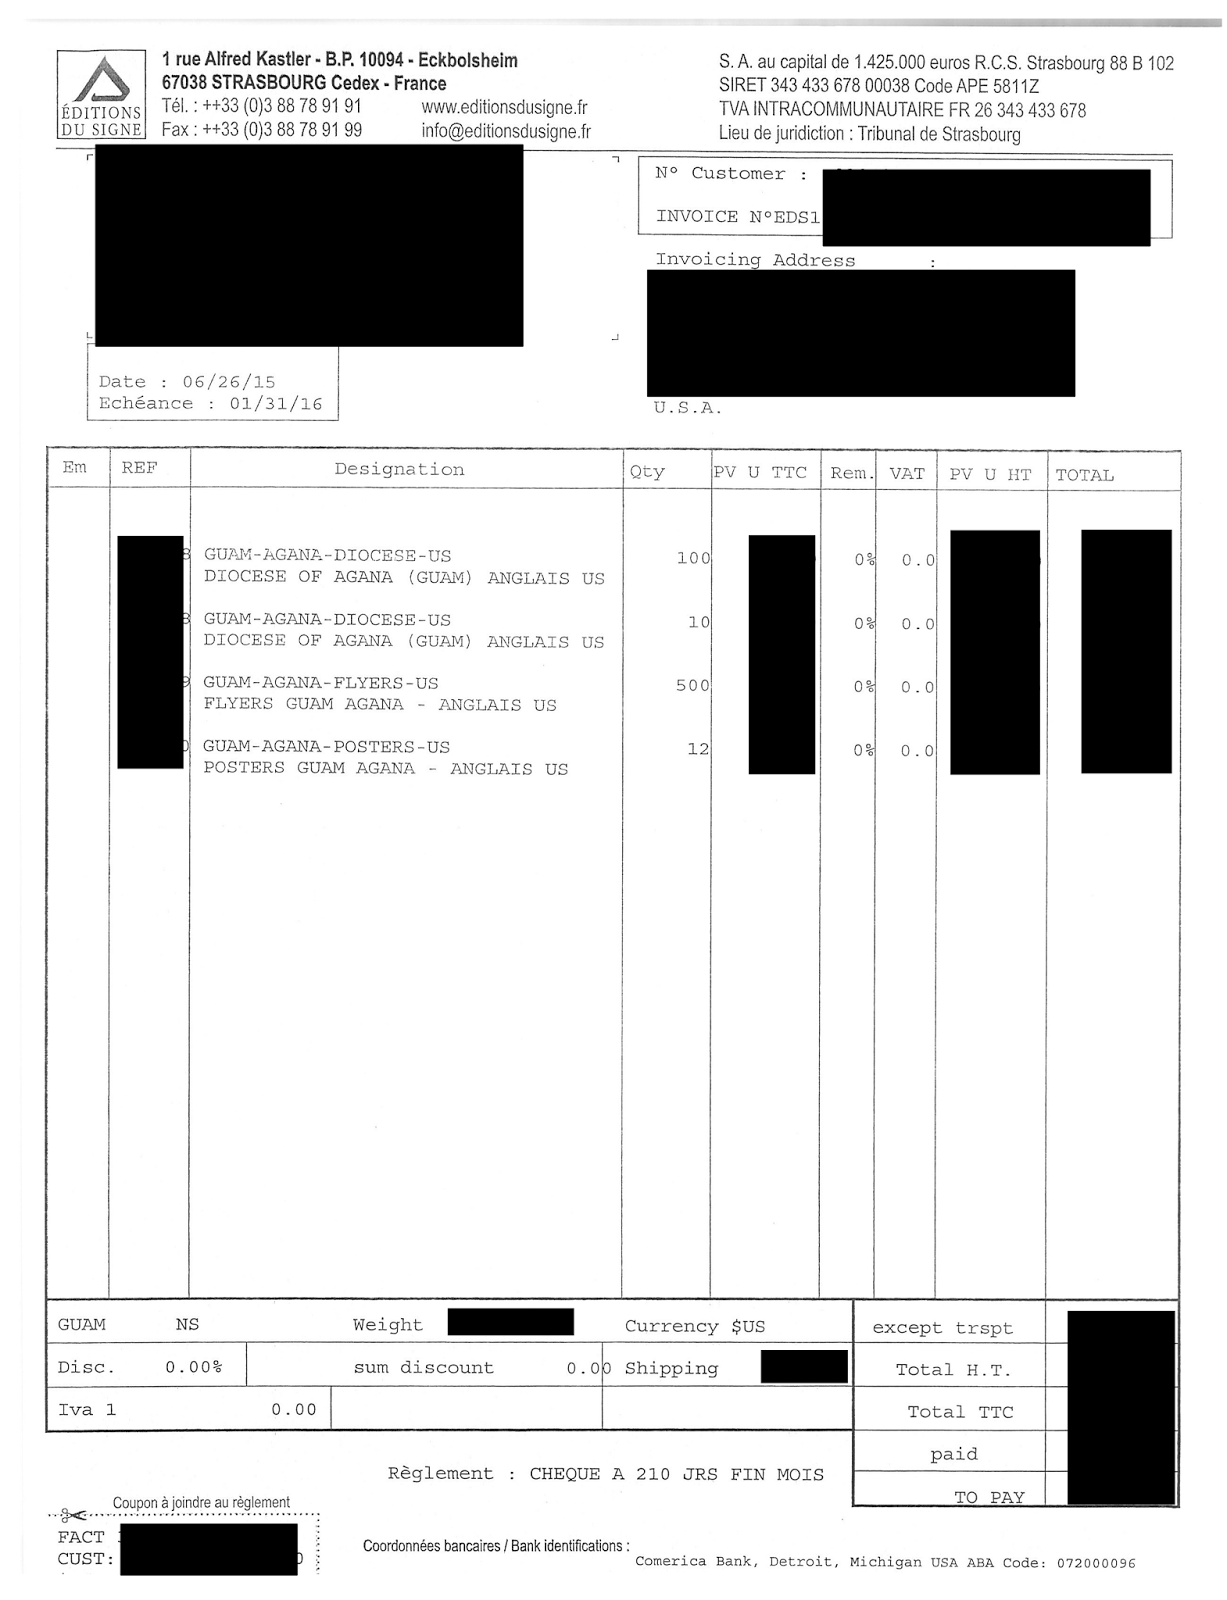 Junglewatch Just When You Thought Apuron Couldnt Get Any Lower Comerica Bank Wiring Instructions Certain Info On This Invoice Has Been Redacted For Obvious Reasons